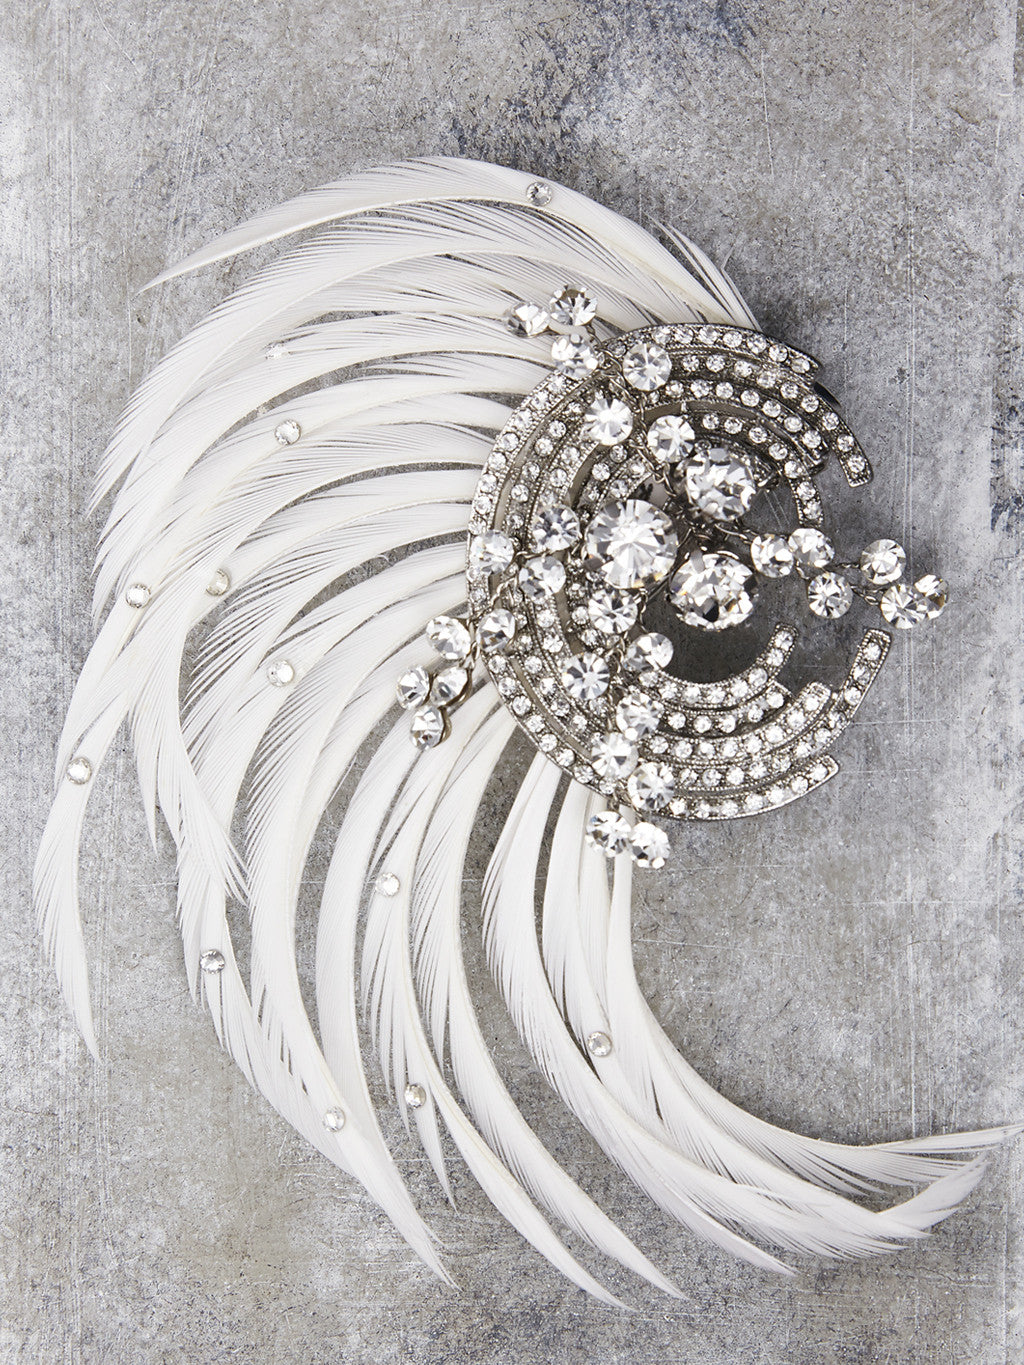 Art Deco Feathered hairpiece